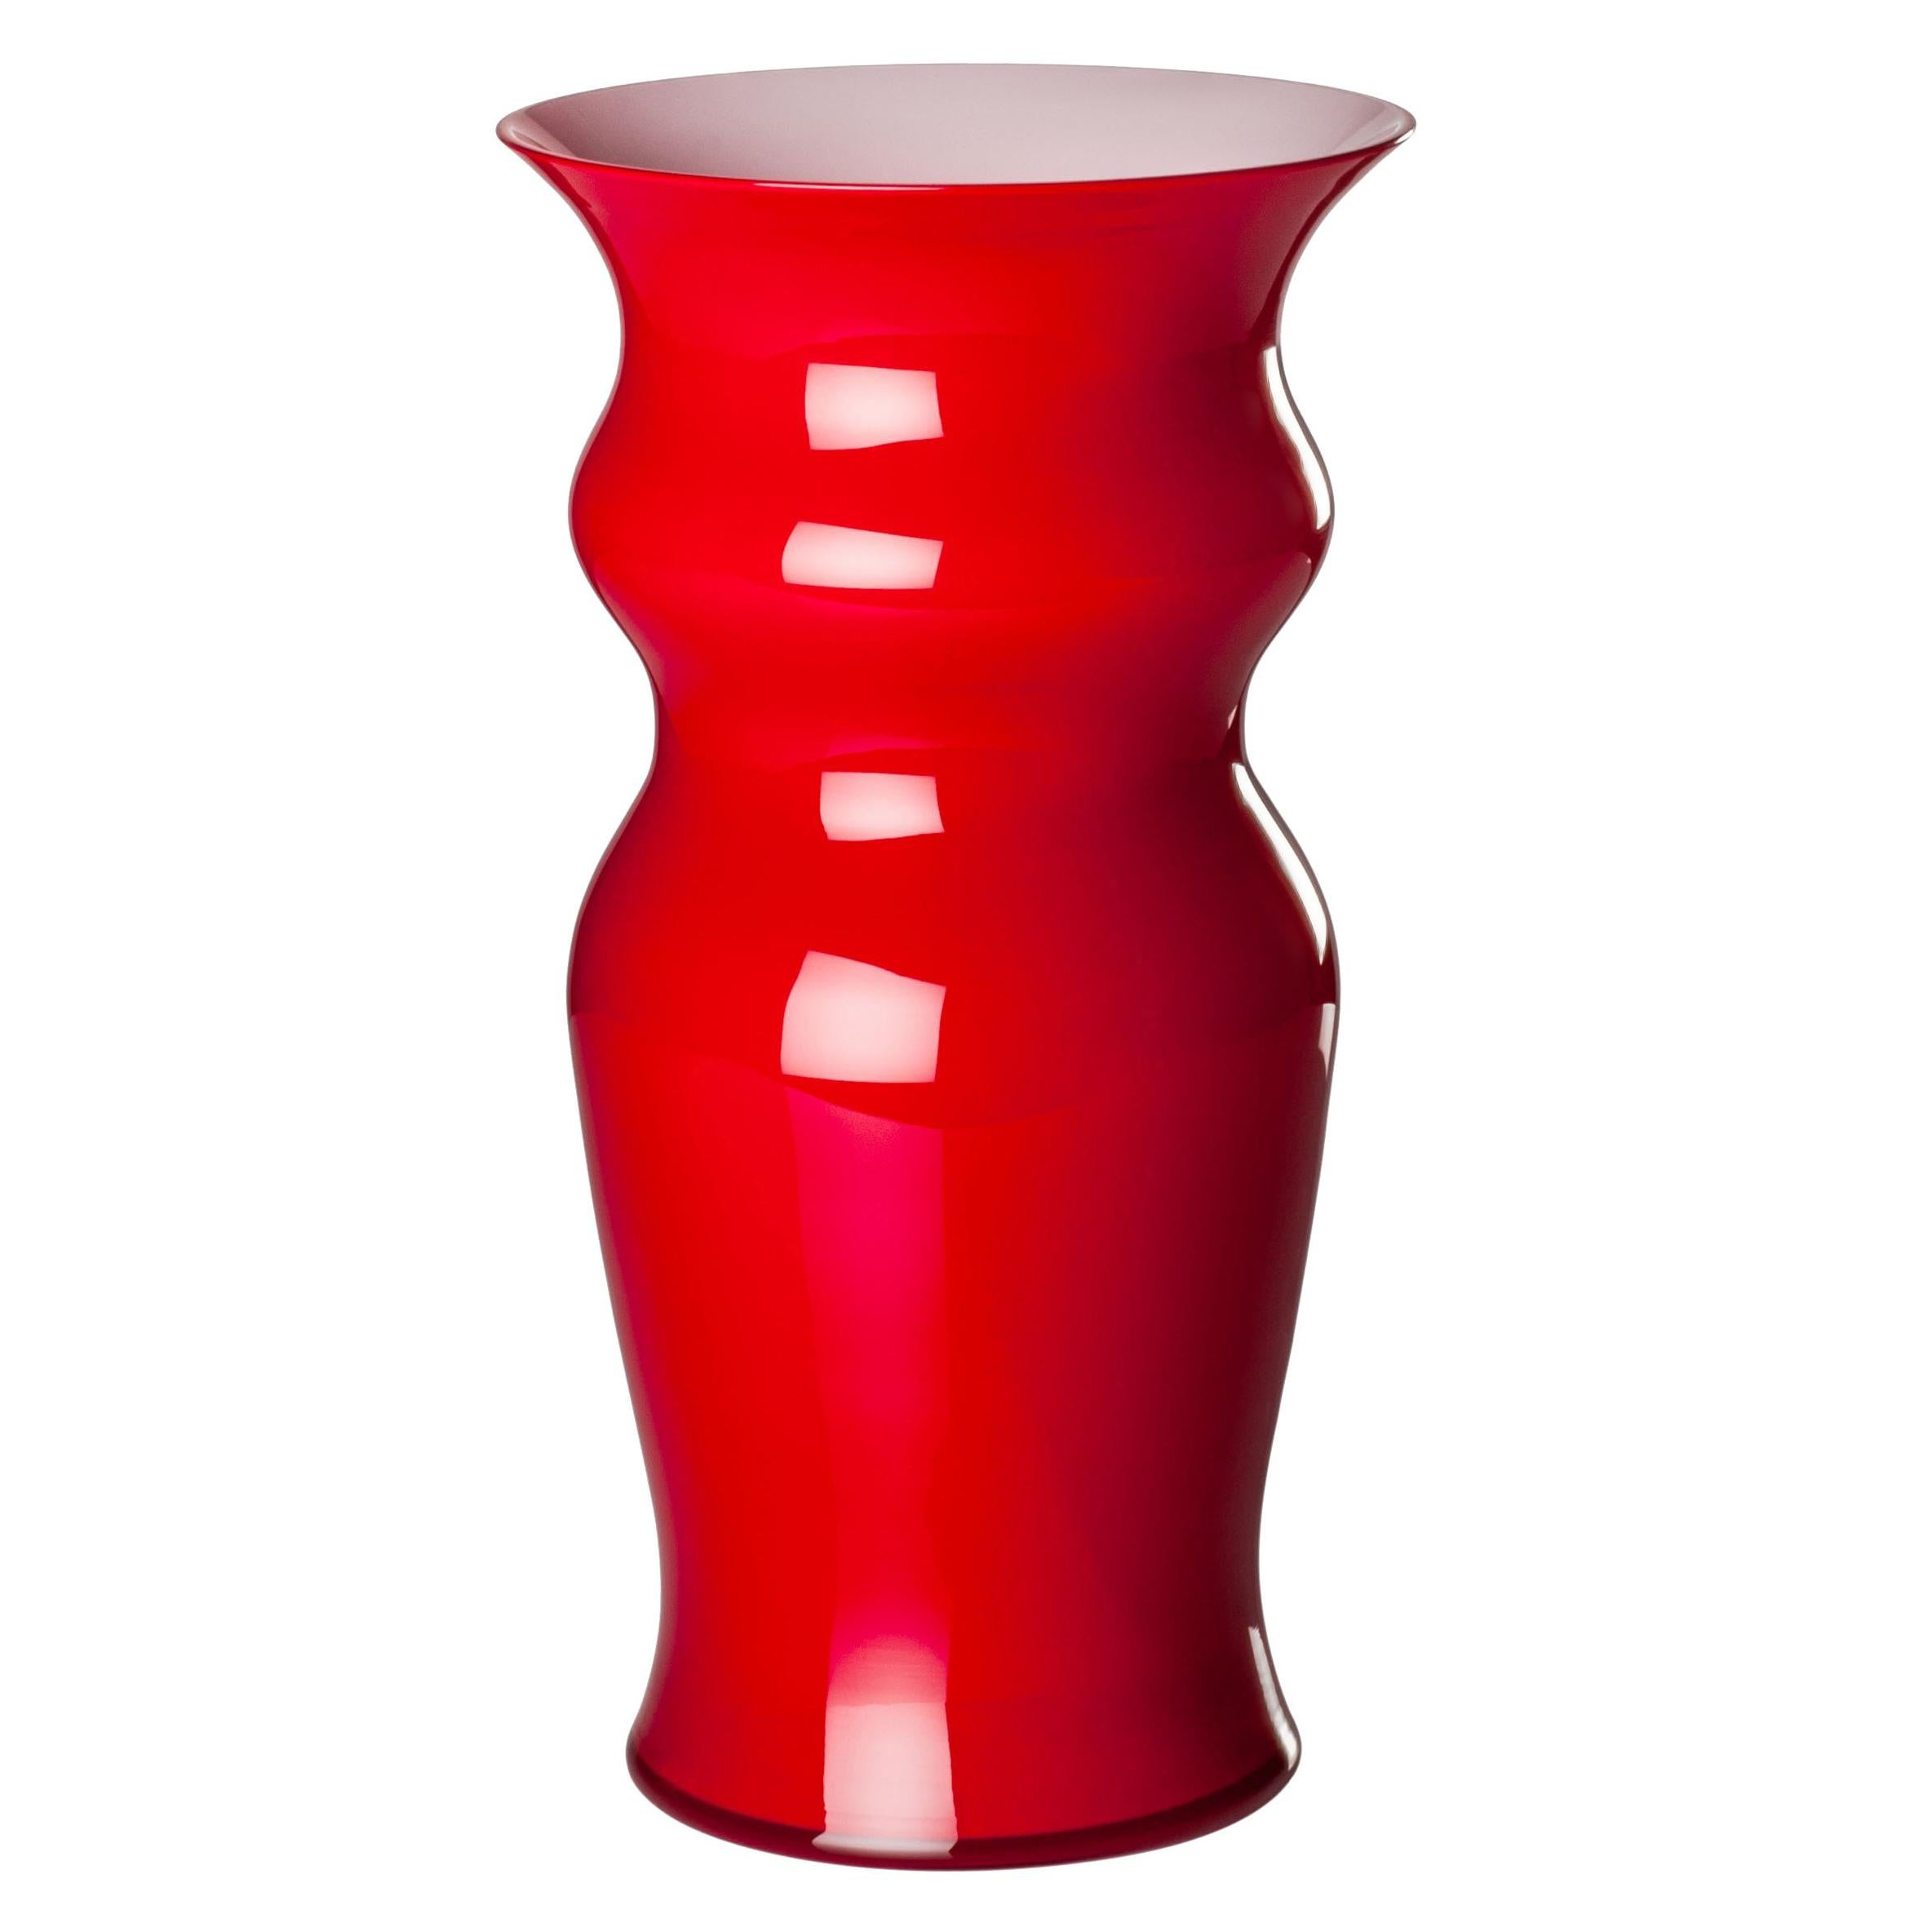 Leonardo Vase Venini Tall Odalische Glass Vase In Red By Leonardo Ranucci